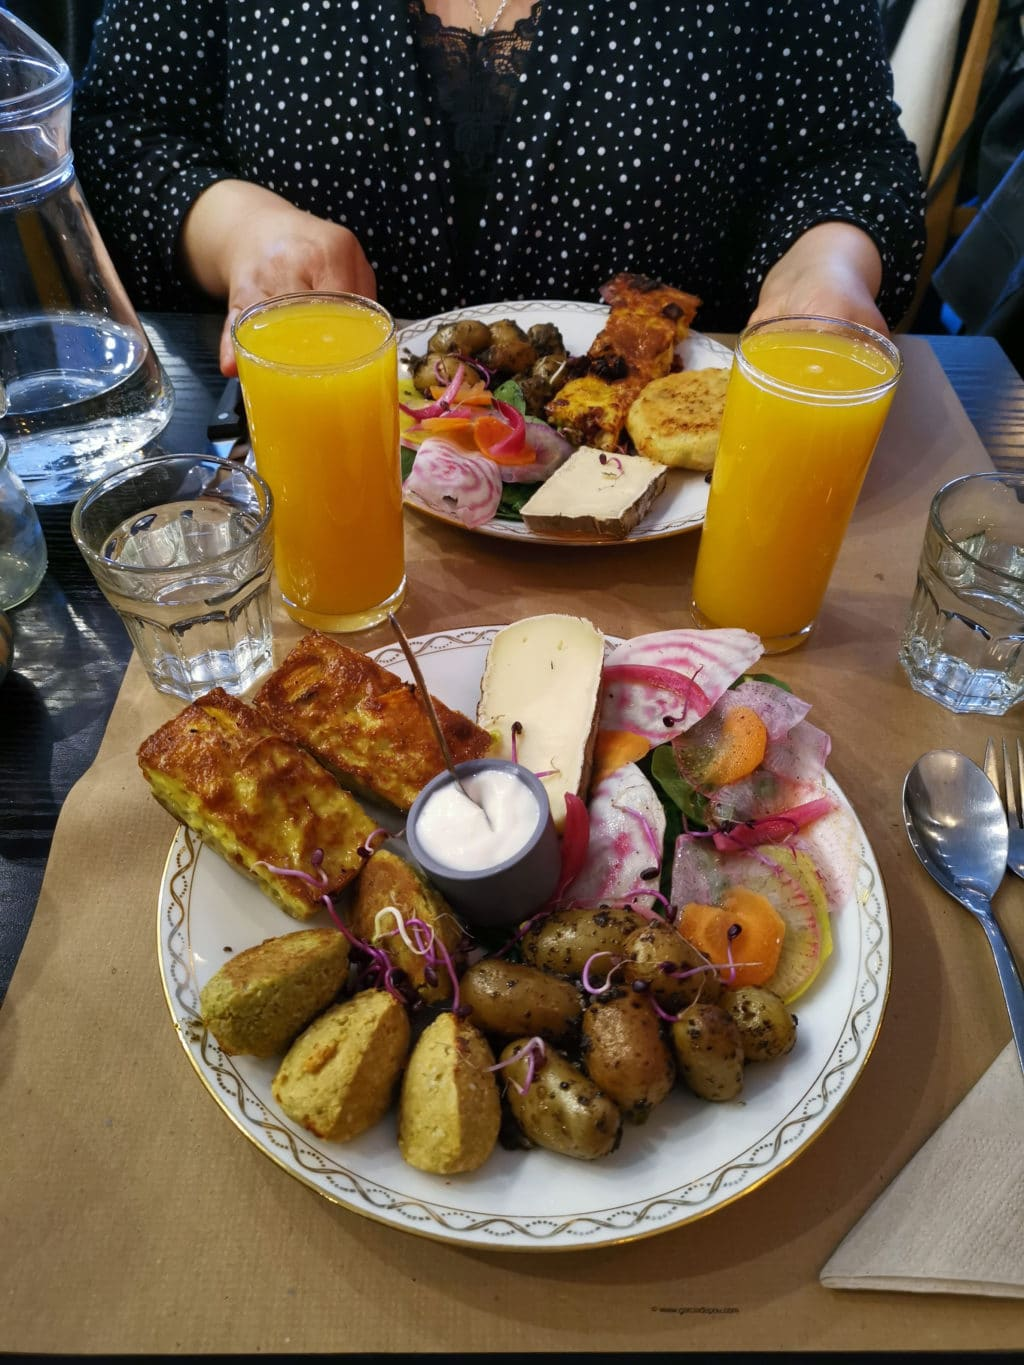 Le-Majeur-Nancy-Restaurant-Brunch